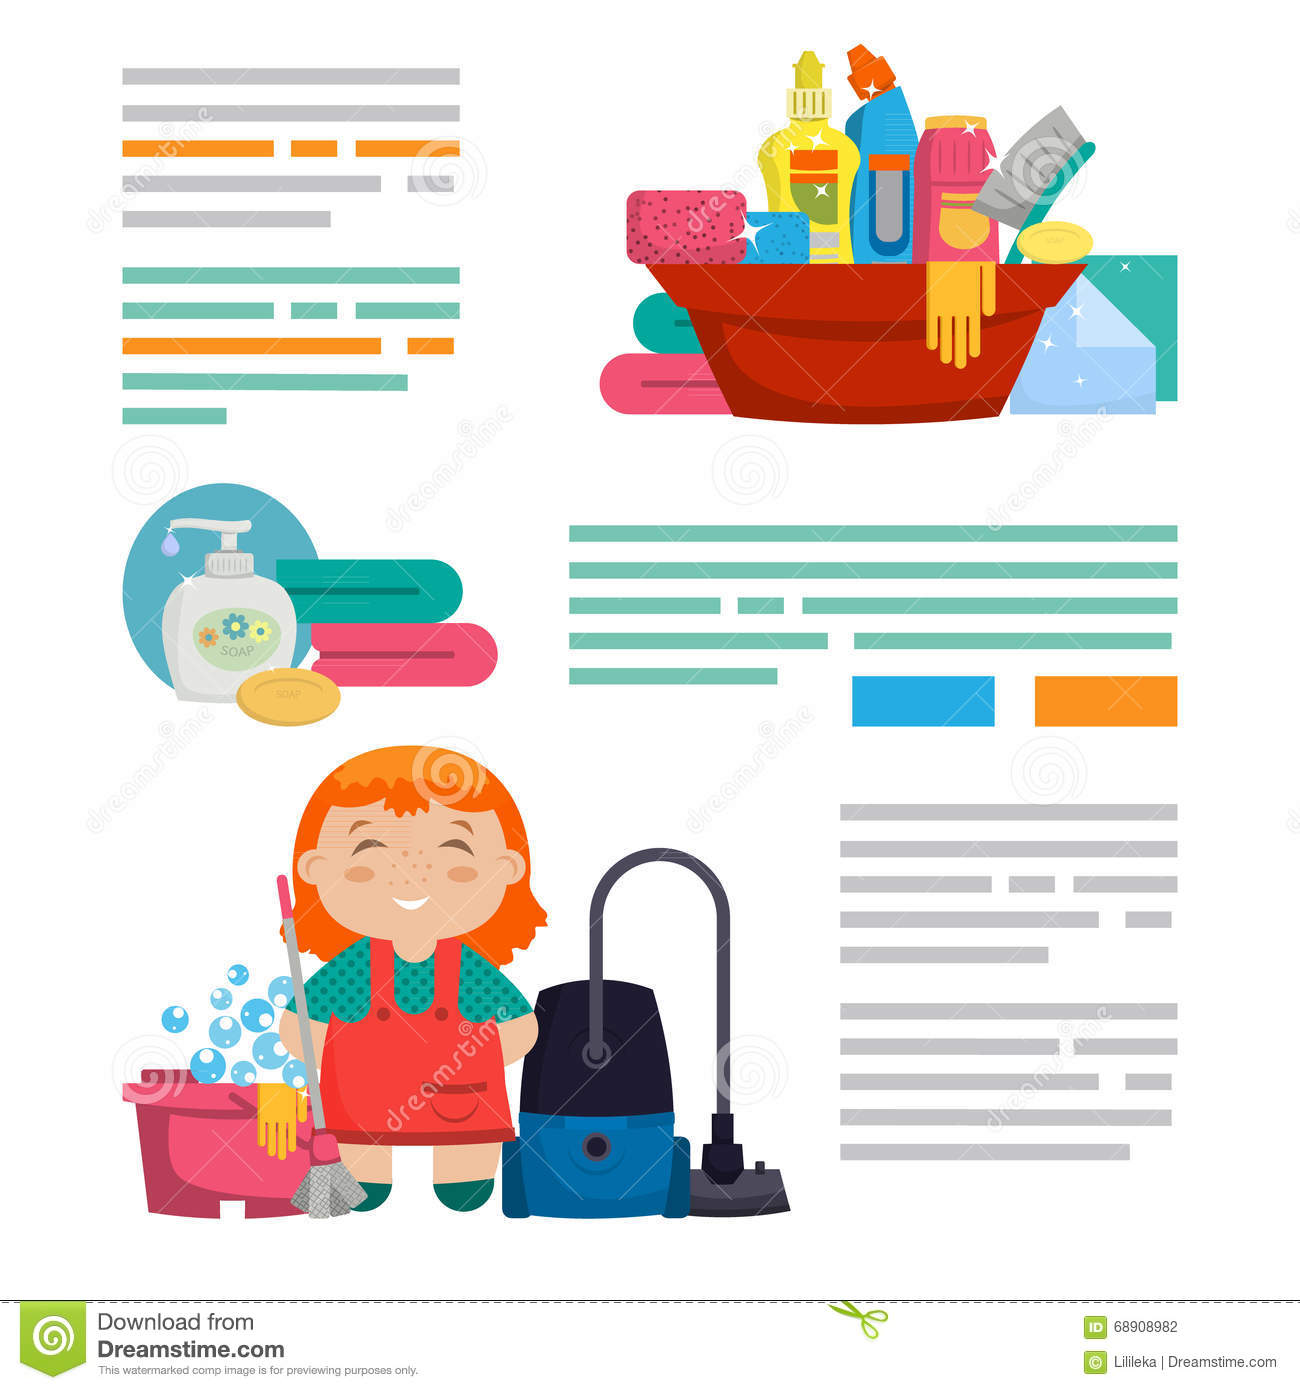 cleaning service template design brochures stock illustration cleaning service template design brochures